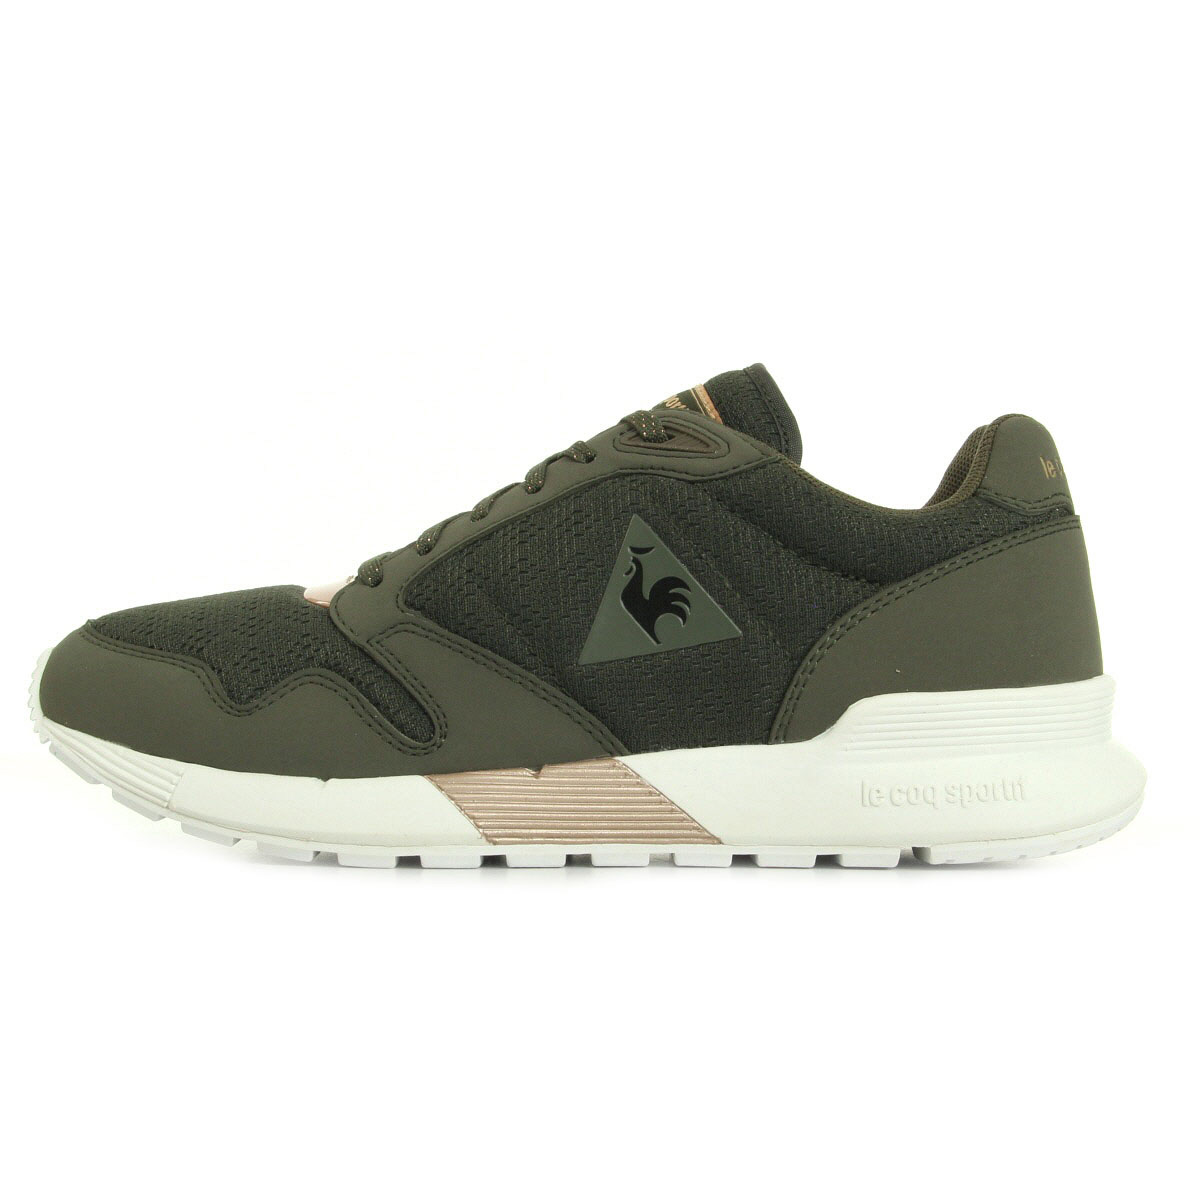 chaussures baskets le coq sportif femme omega x w metallic olive night rose gold ebay. Black Bedroom Furniture Sets. Home Design Ideas